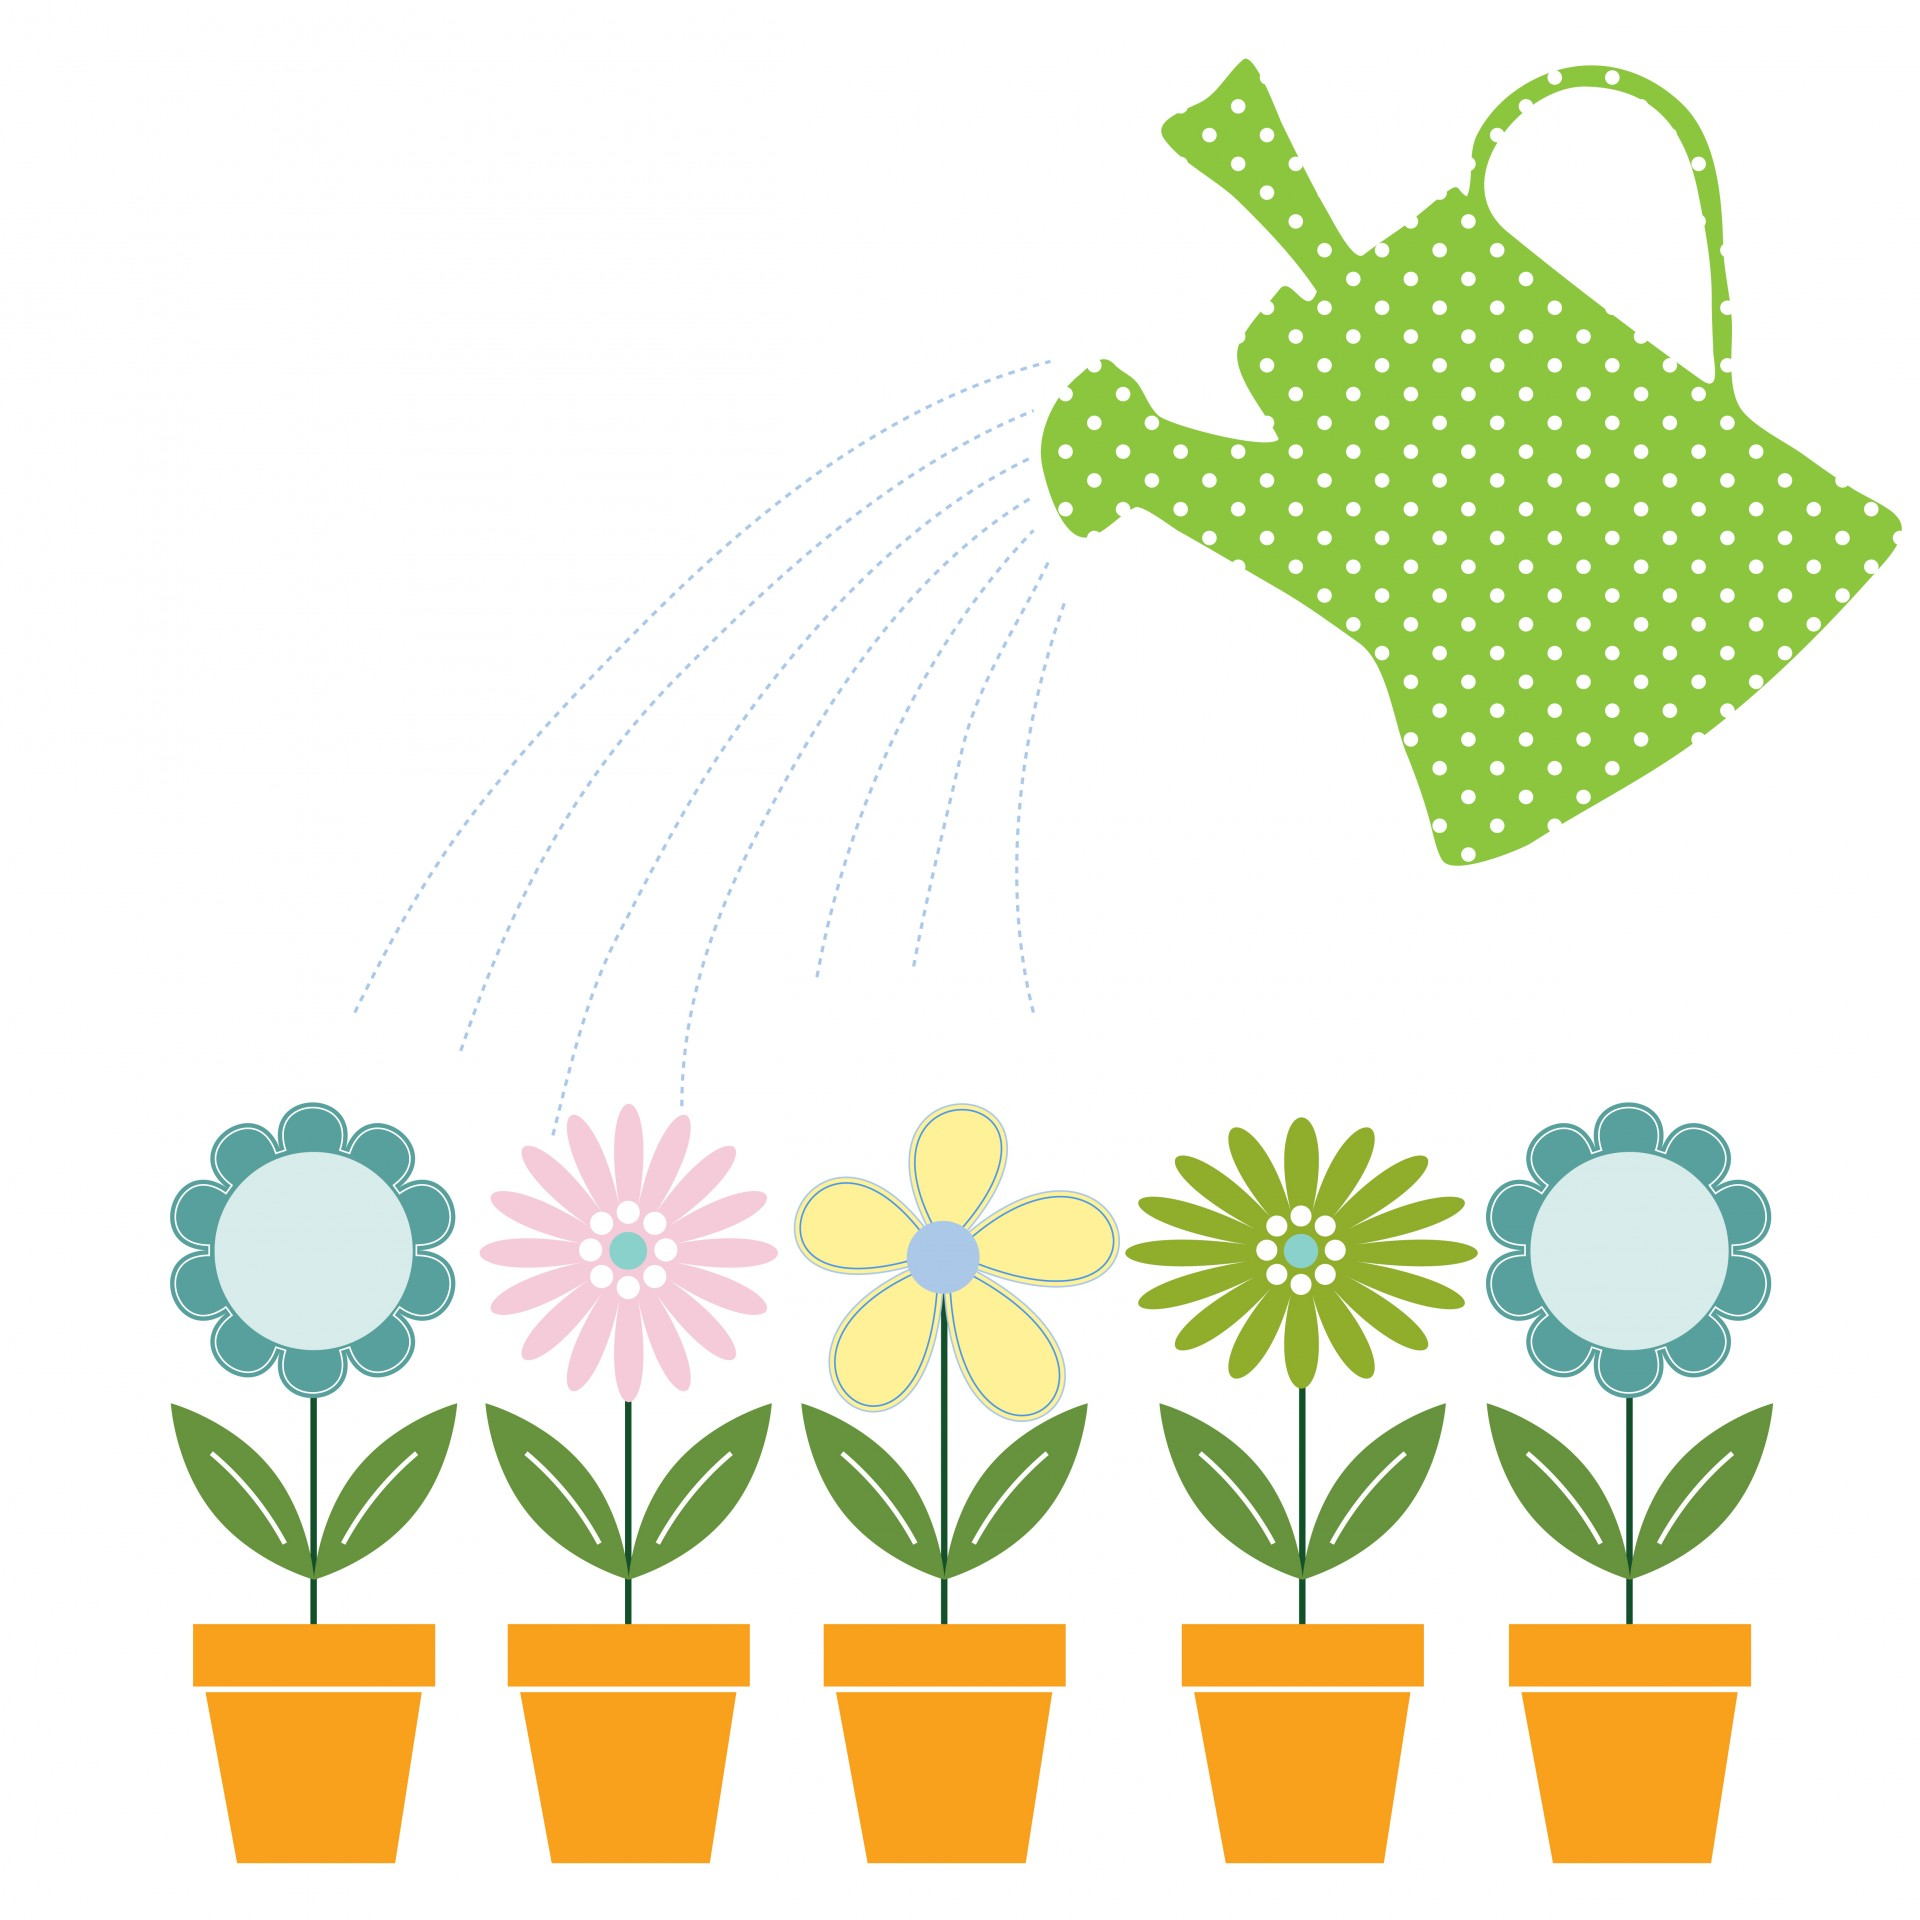 Flower & Watering Can Clipart Free Stock Photo.